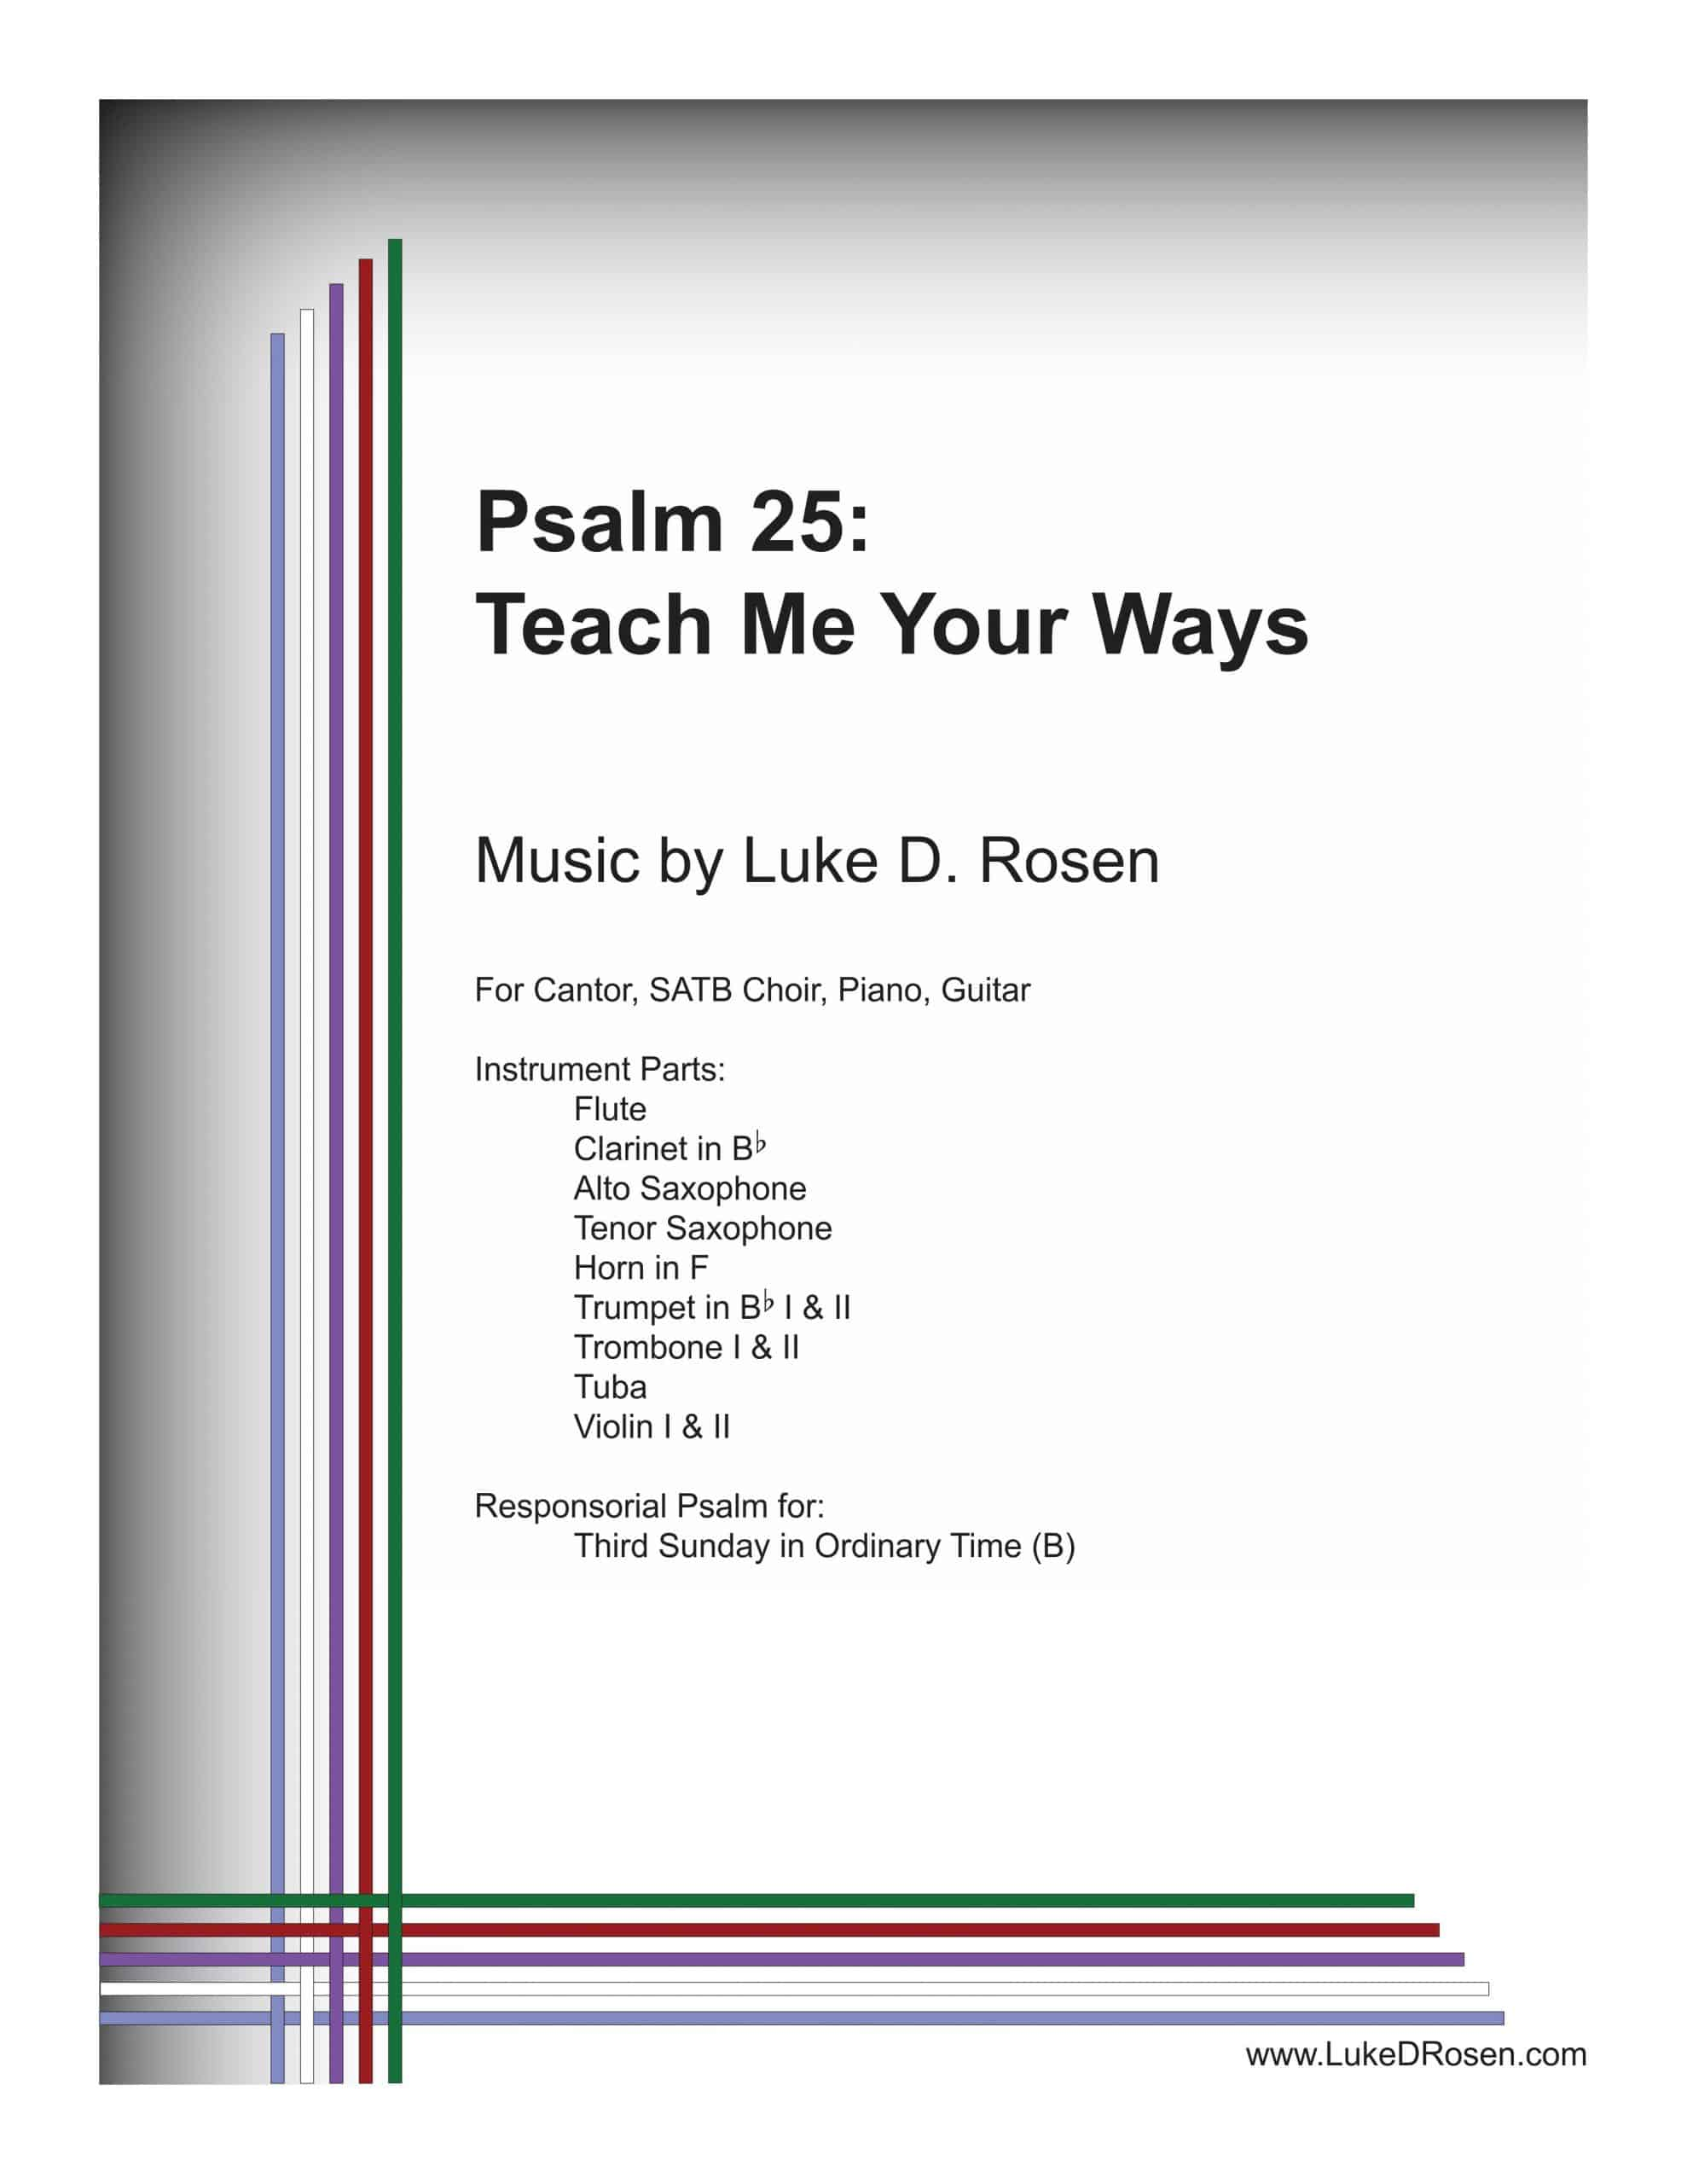 Psalm 25 Teach Me Your Ways ROSEN Sample Complete PDF scaled